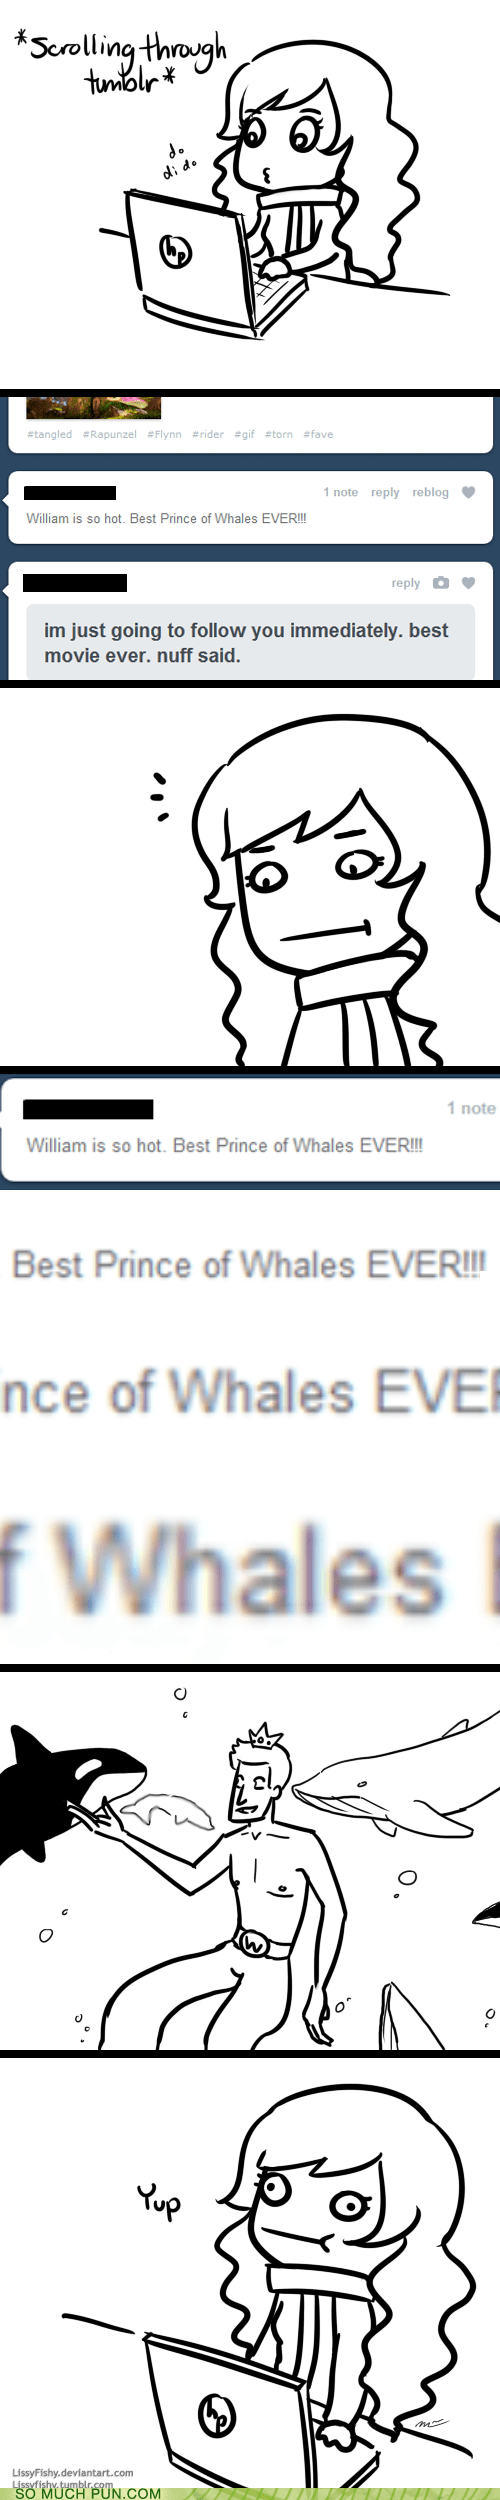 added letter double meaning literalism misspelling prince royal family tumblr Wales whales william - 5469928704